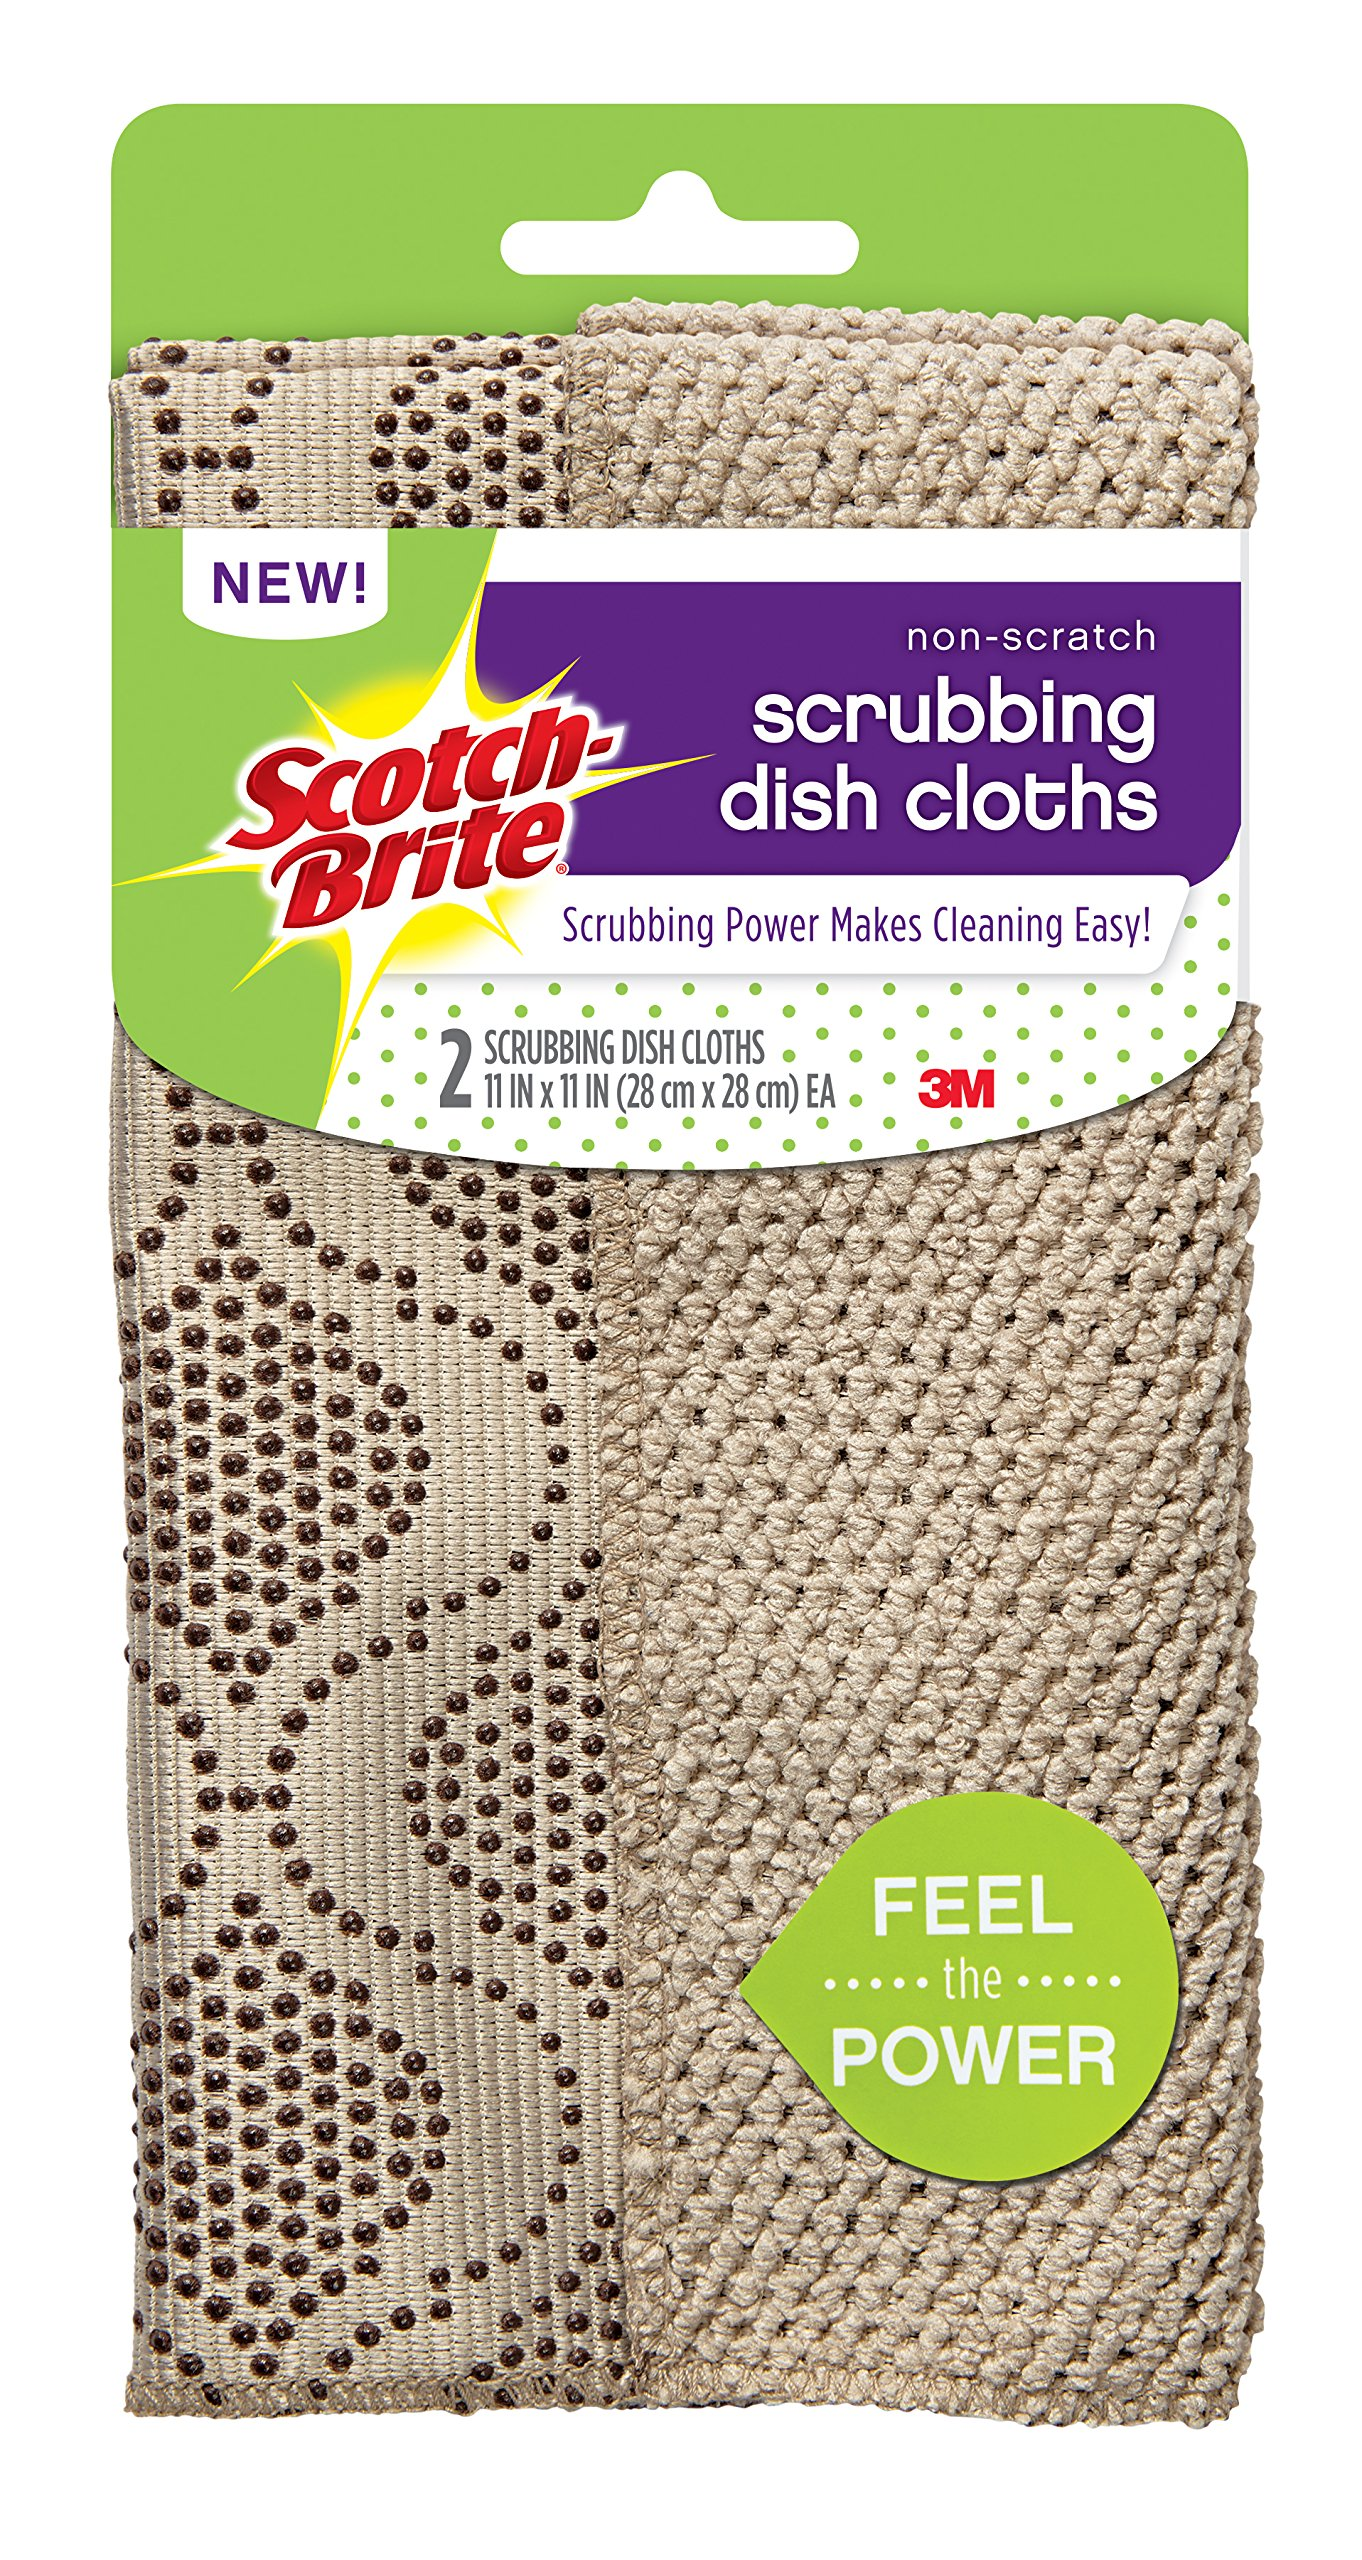 Scotch-Brite Reusable Dishcloth